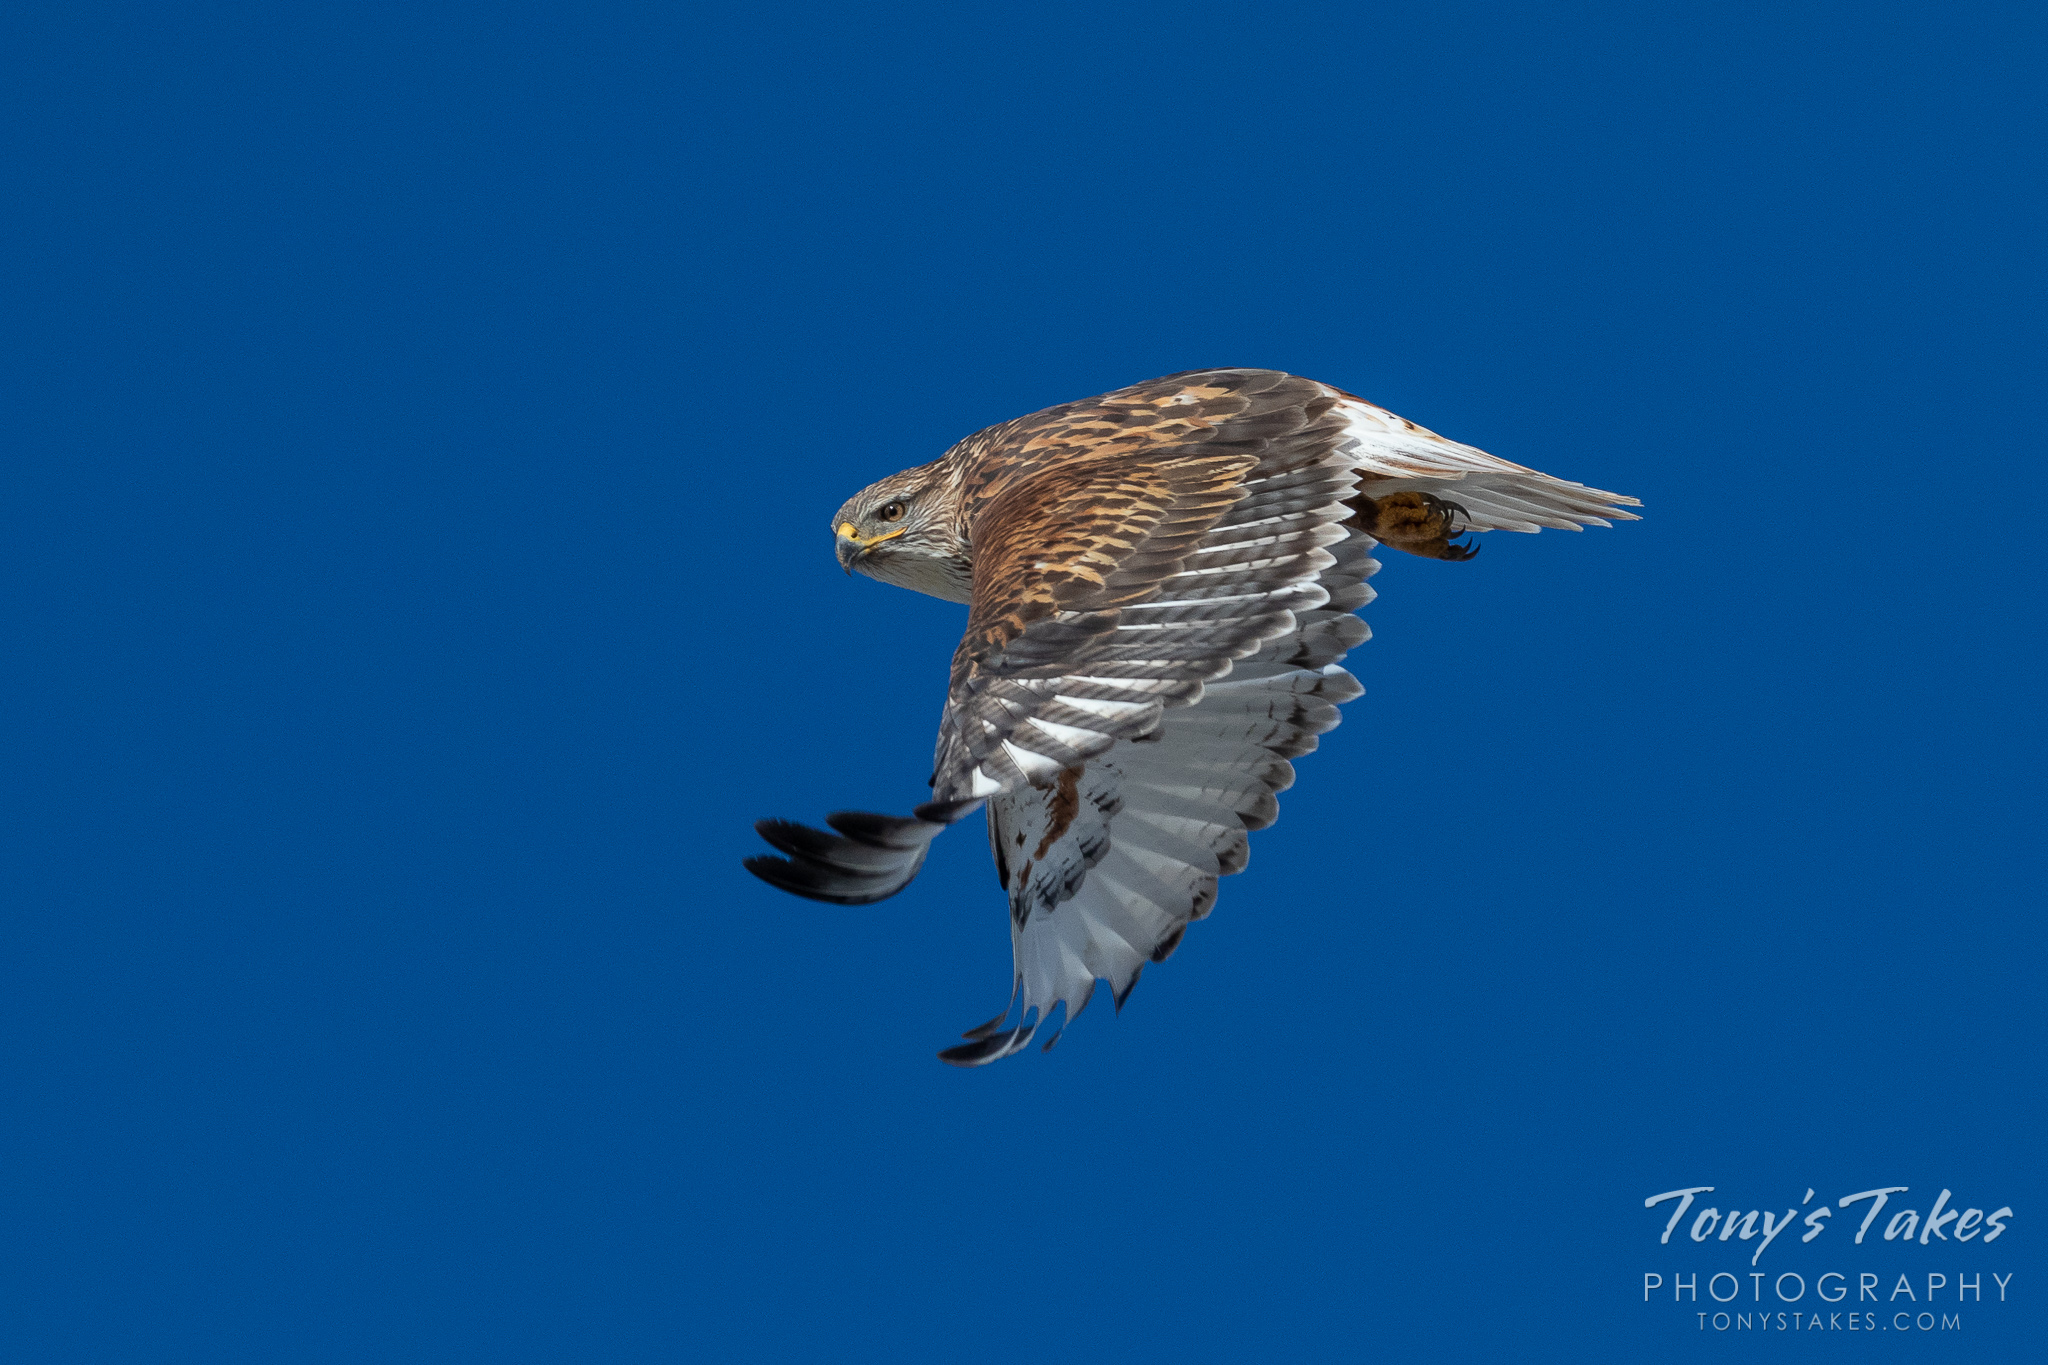 A Ferruginous Hawk performs a flyby against deep, blue skies in Colorado. (© Tony's Takes)